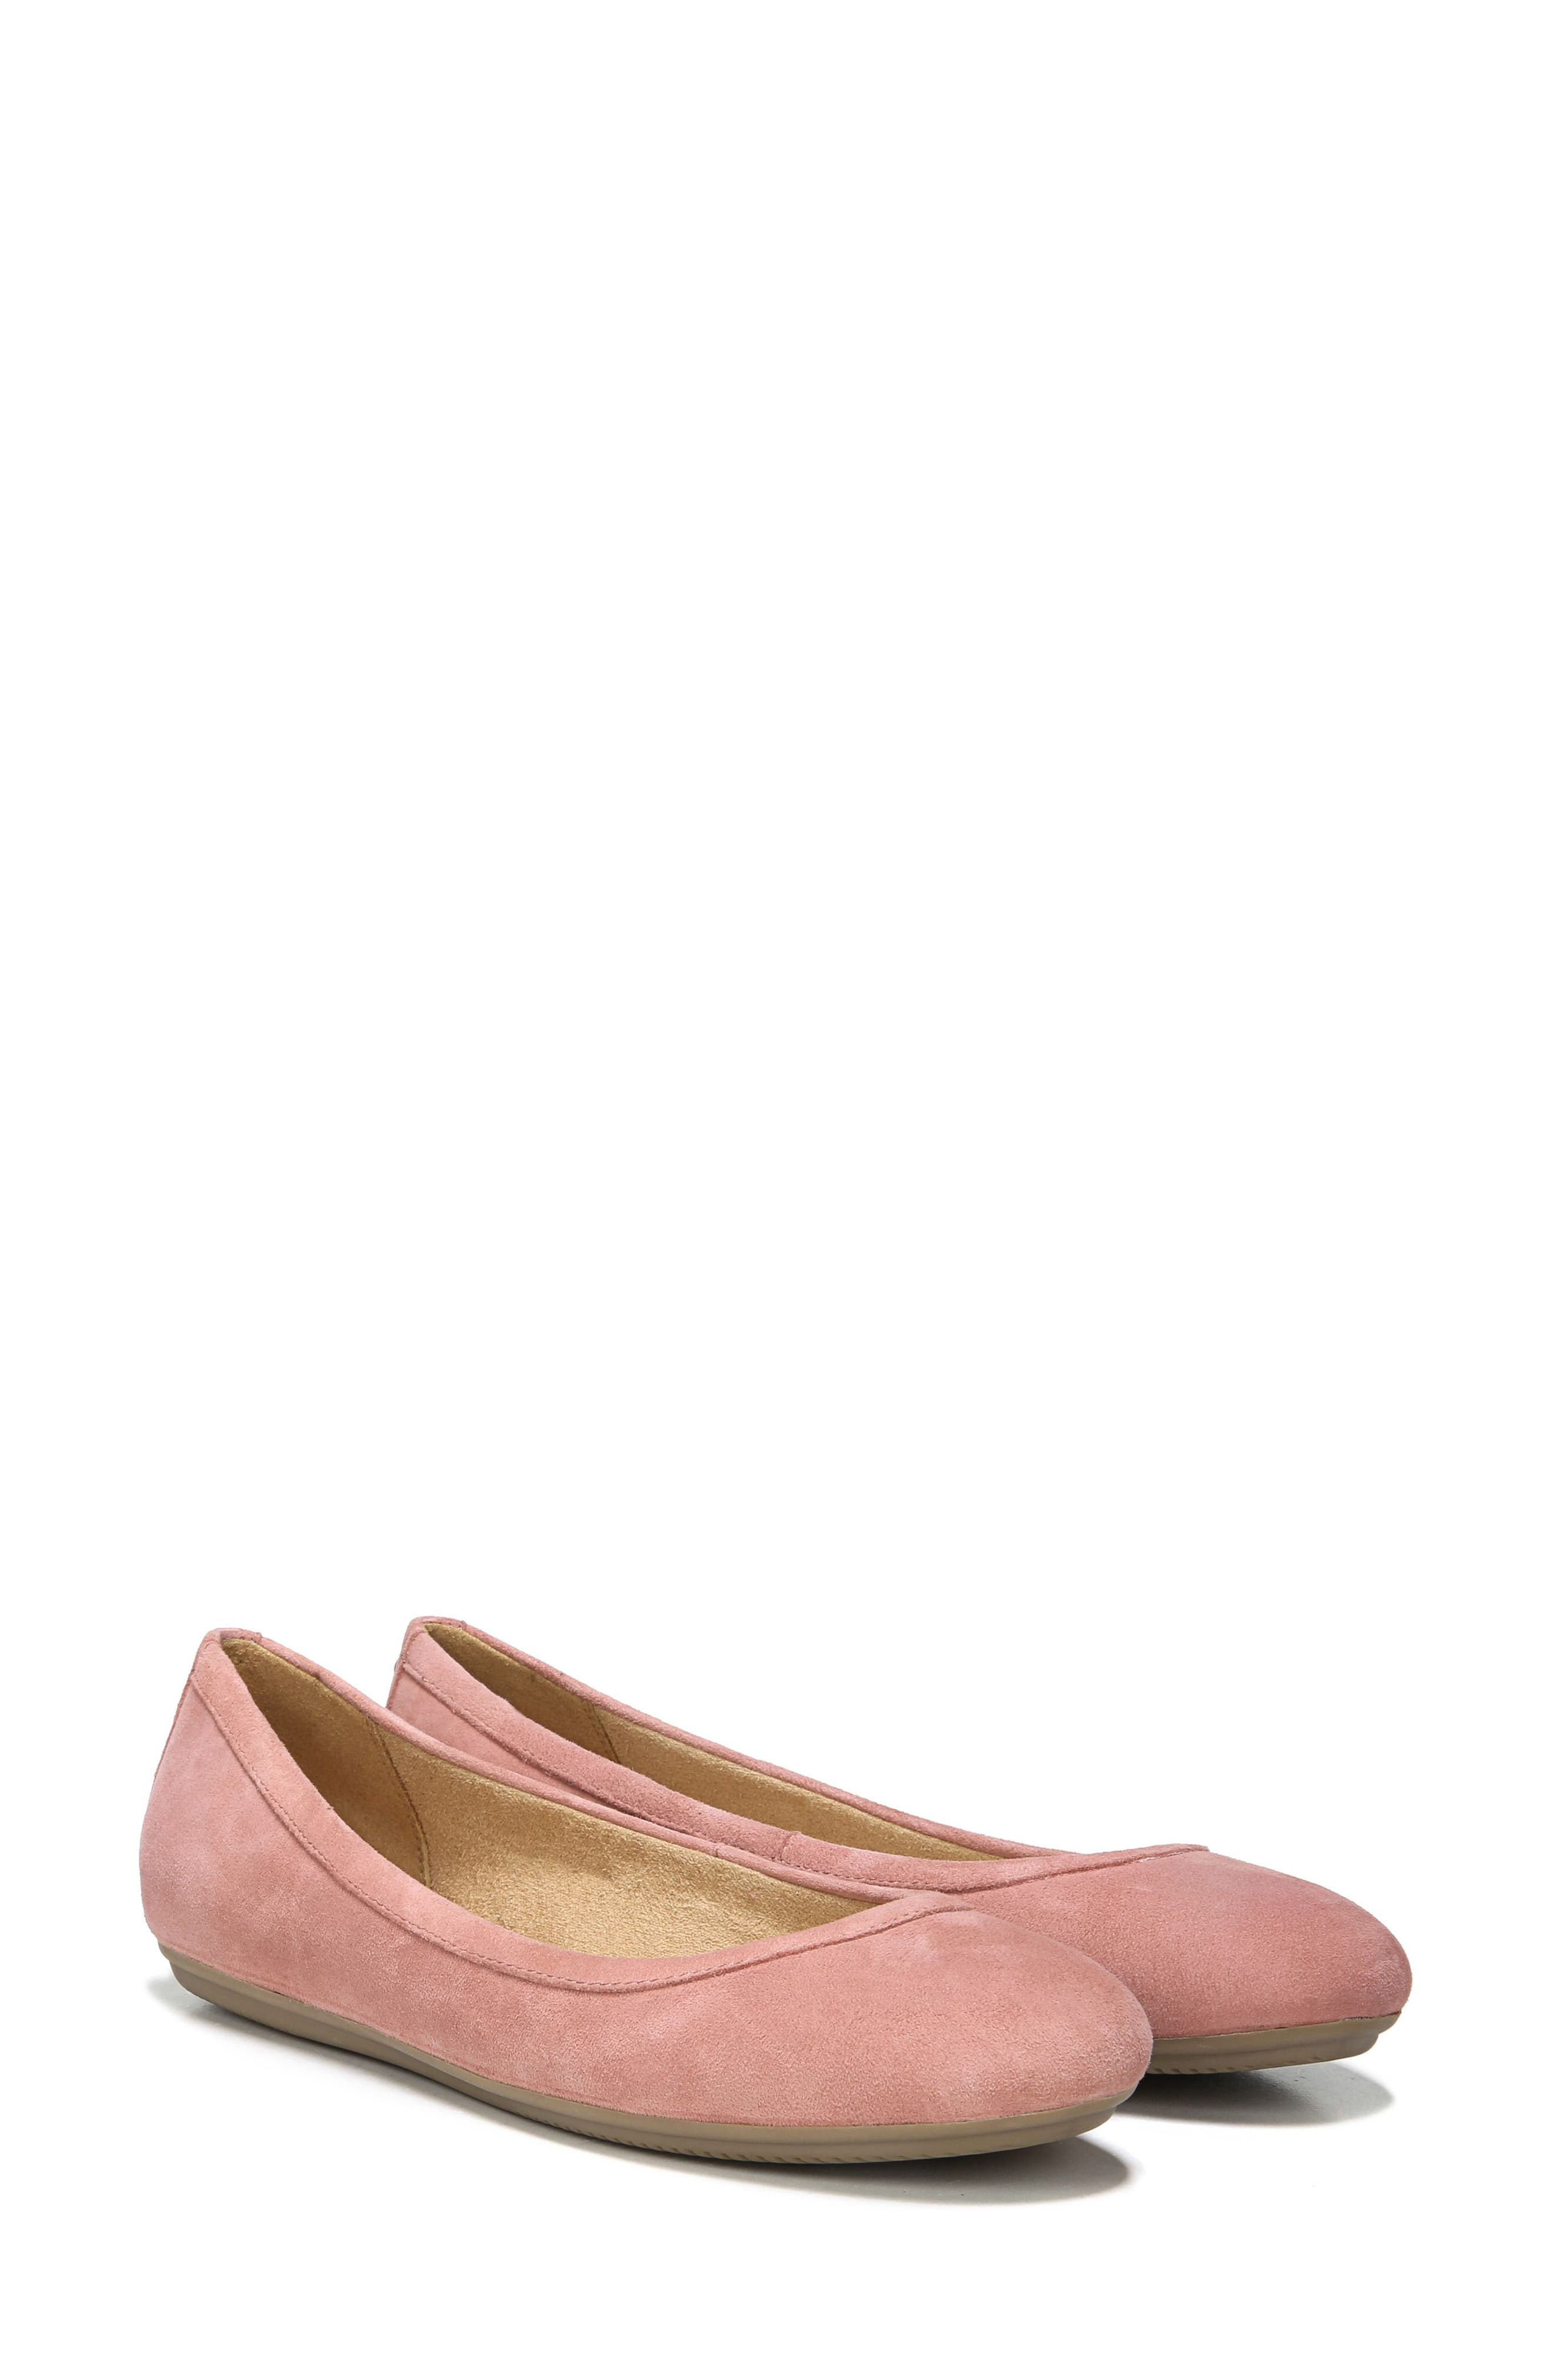 NATURALIZER, Brittany Ballet Flat, Alternate thumbnail 7, color, PEONY PINK SUEDE